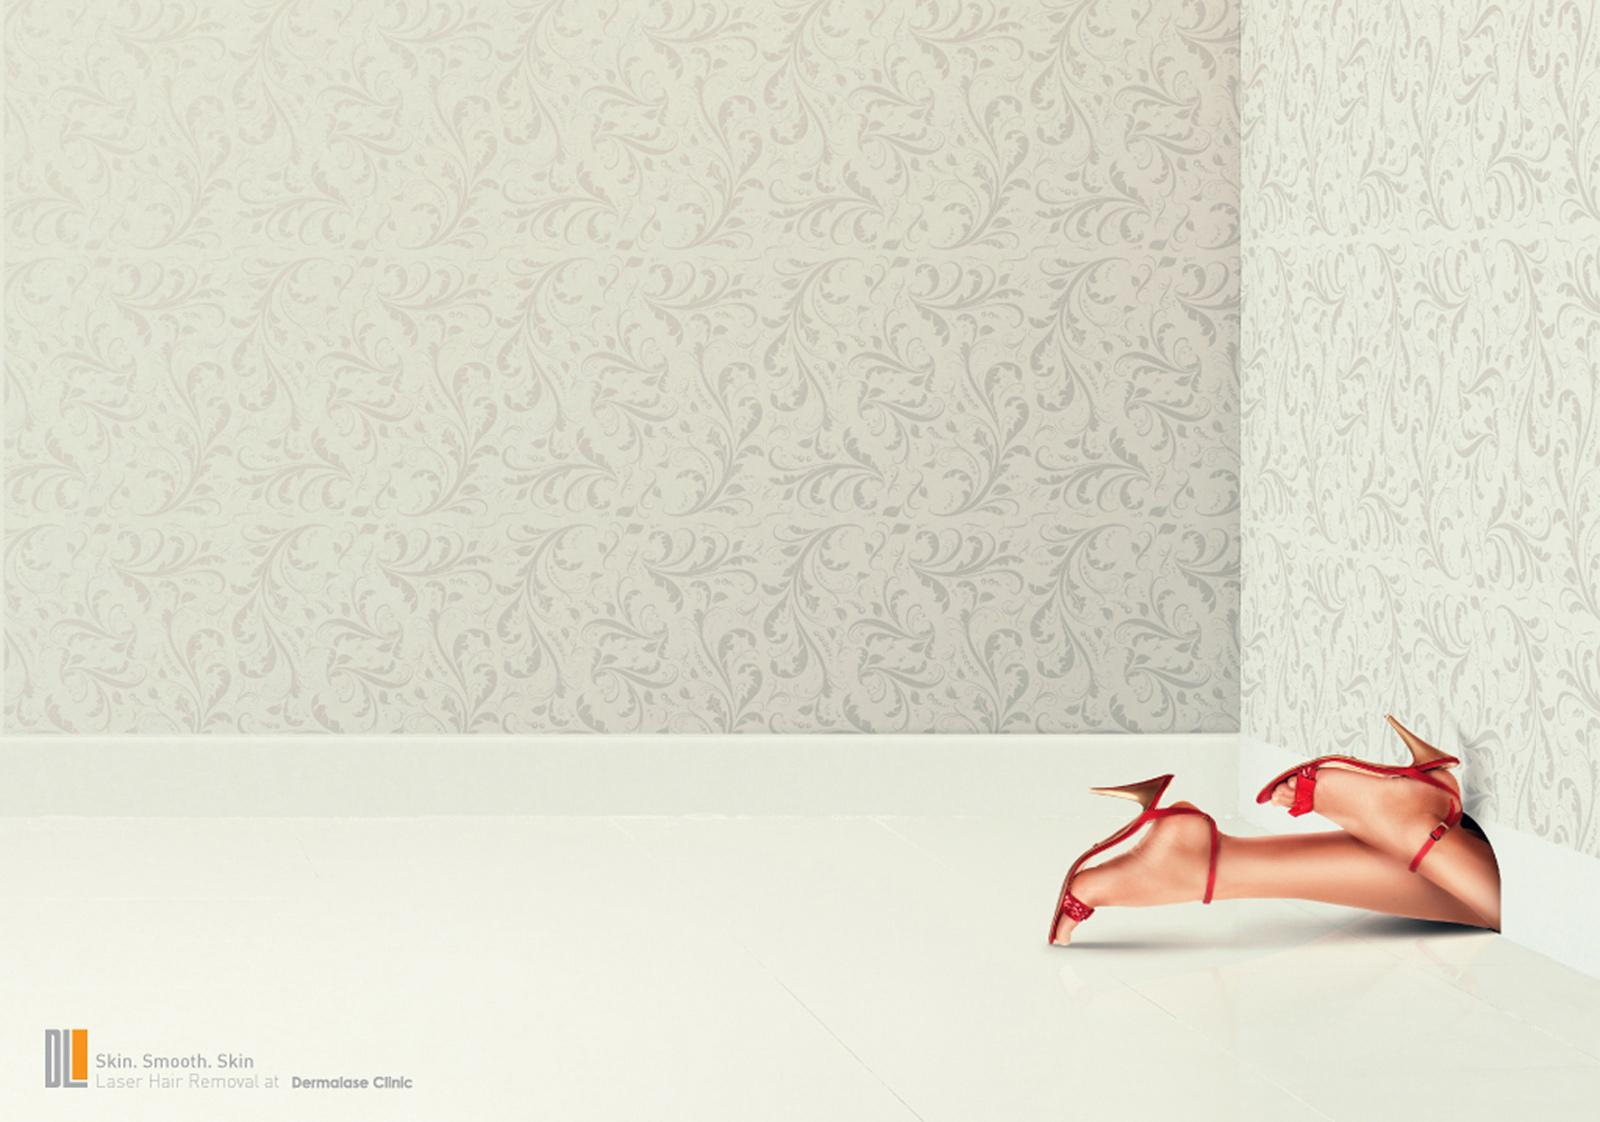 Dermalase Clinic Print Ad -  Mouse Hole